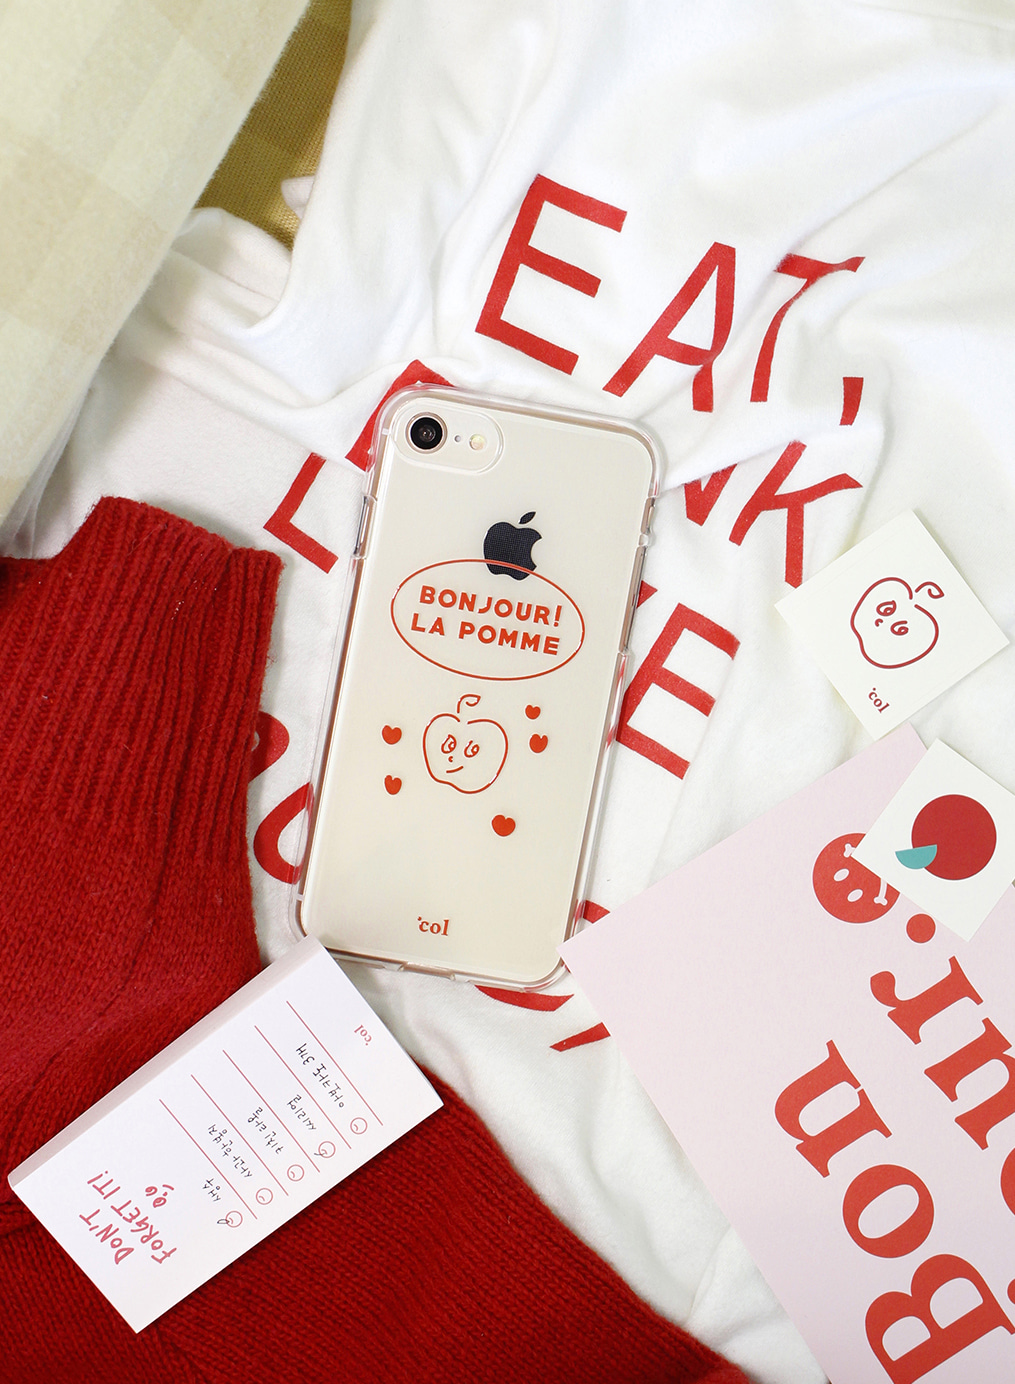 [세트상품] La pomme Case Set (Red)